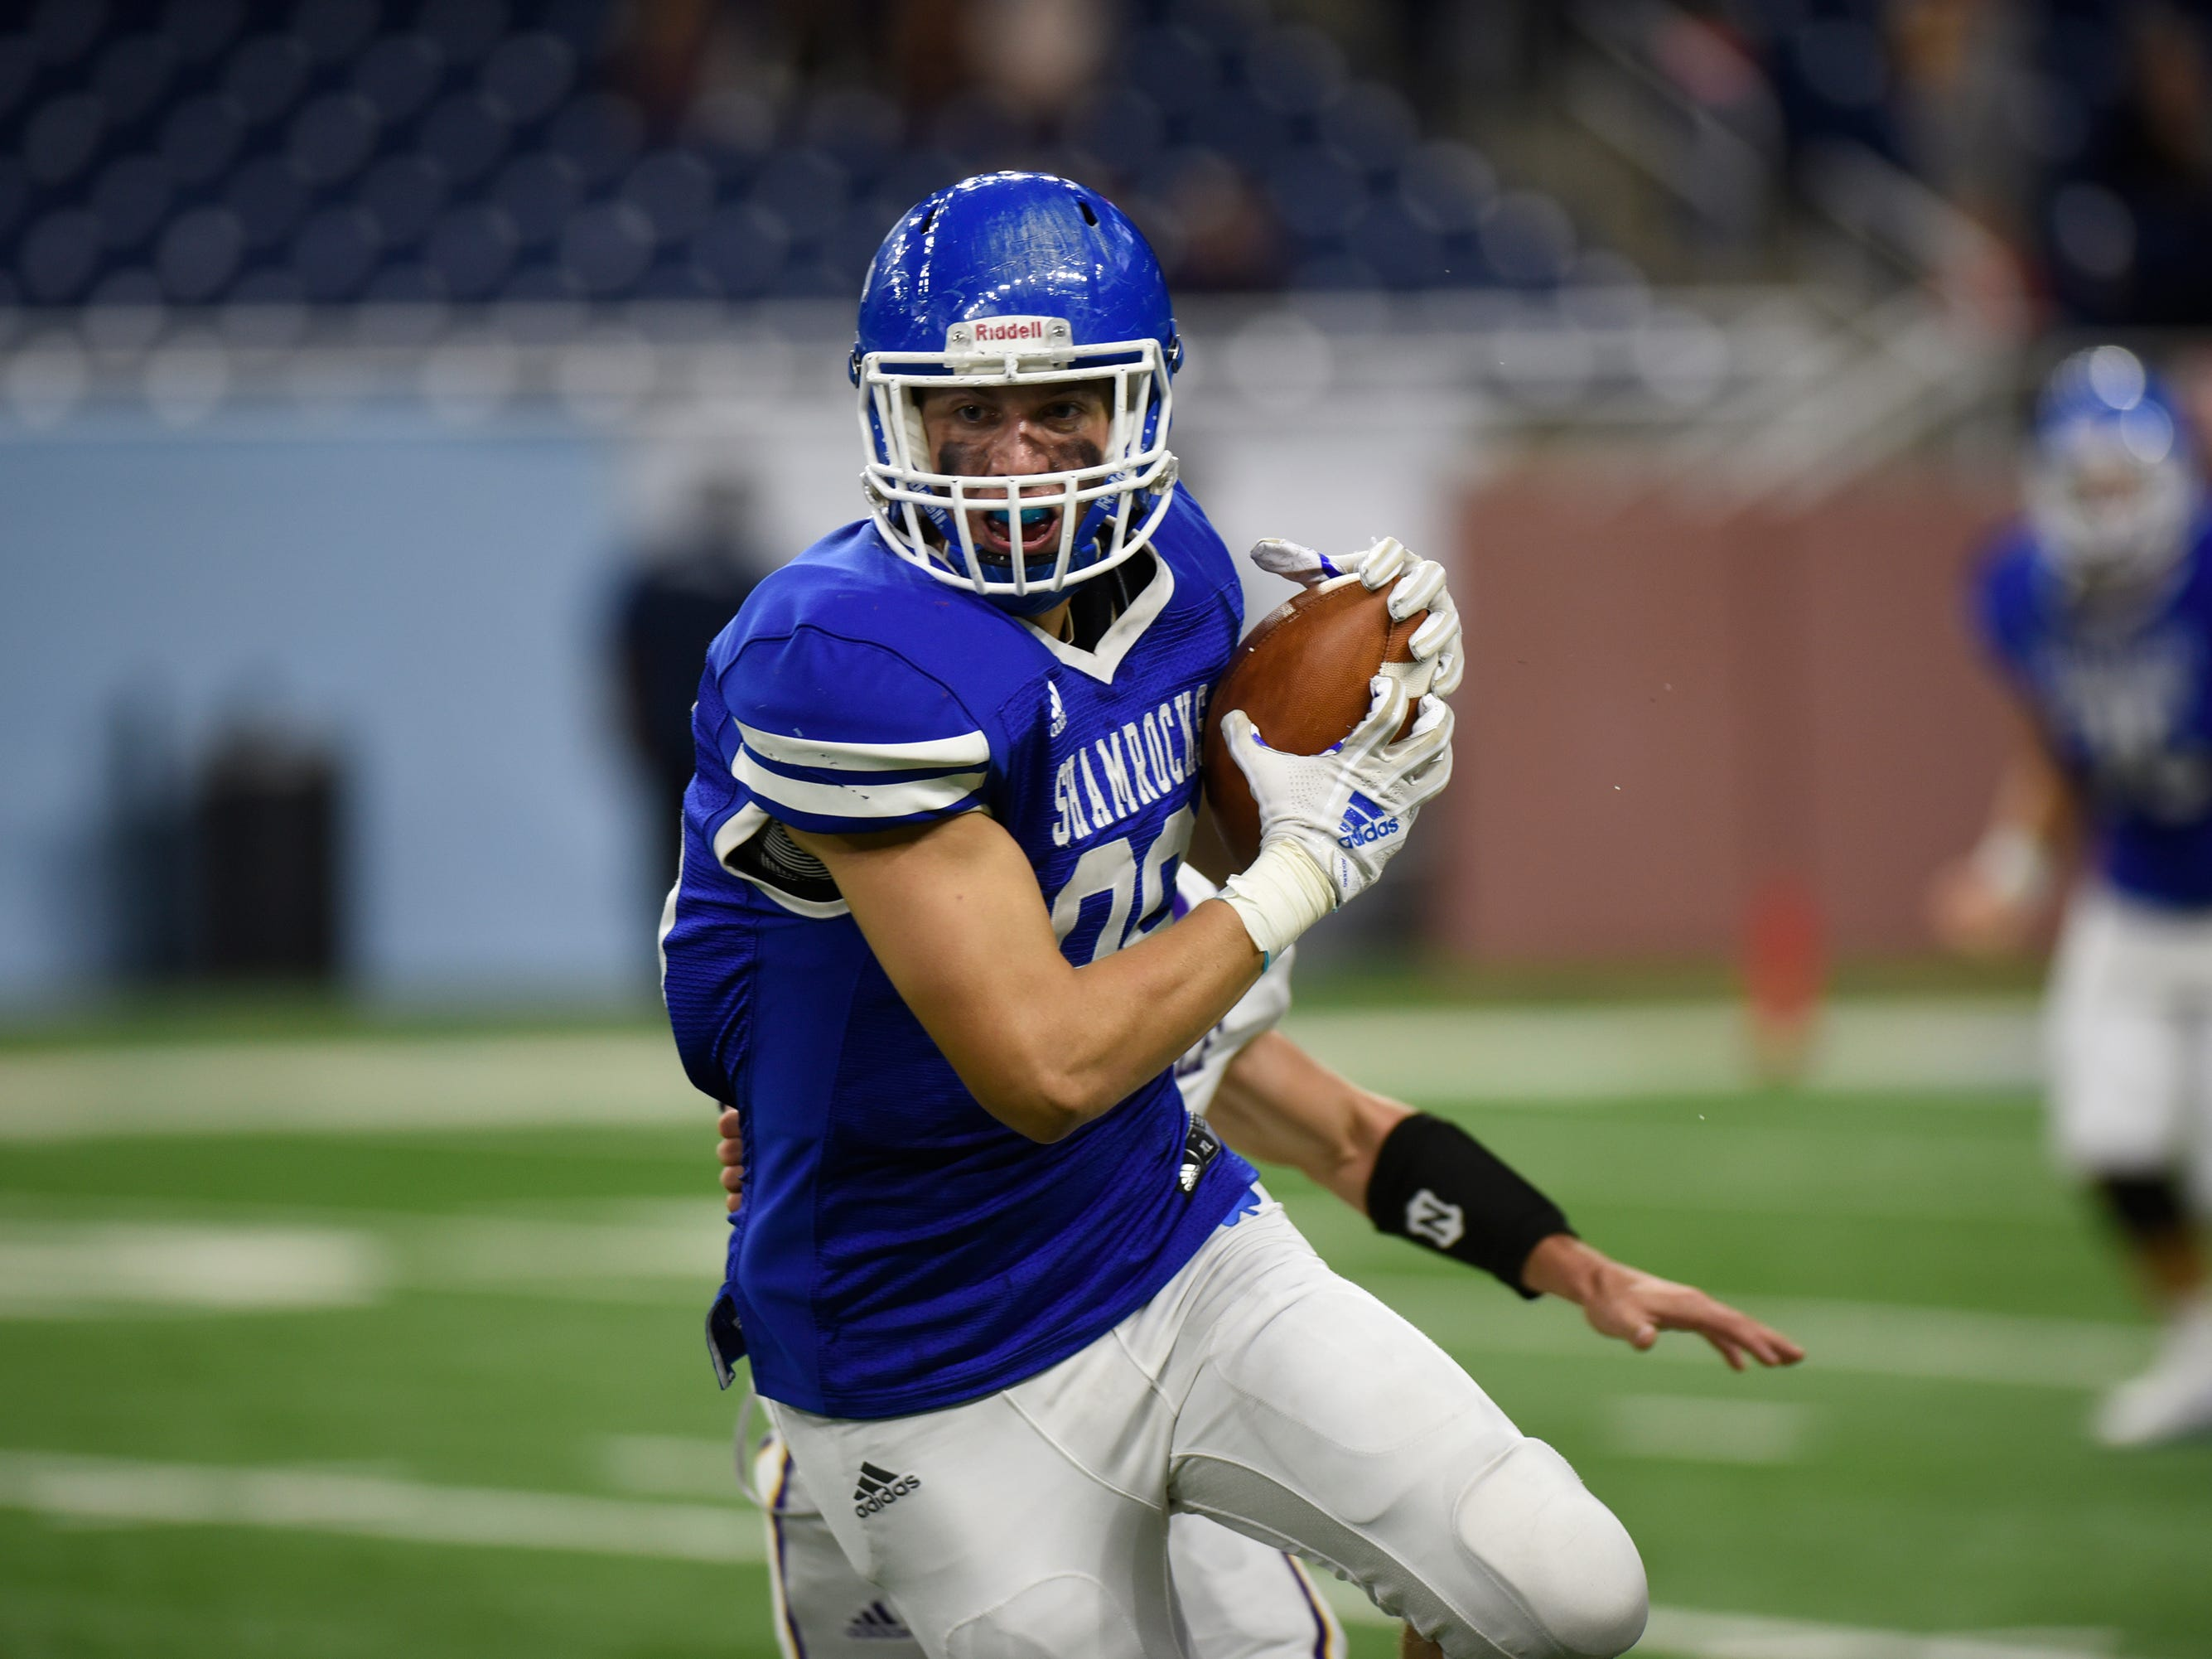 Detroit Catholic Central TE/DE Mike Harding (86) runs after catching a pass during Catholic League Prep Bowl AB Division championship game at Ford Field Oct. 20, 2018.